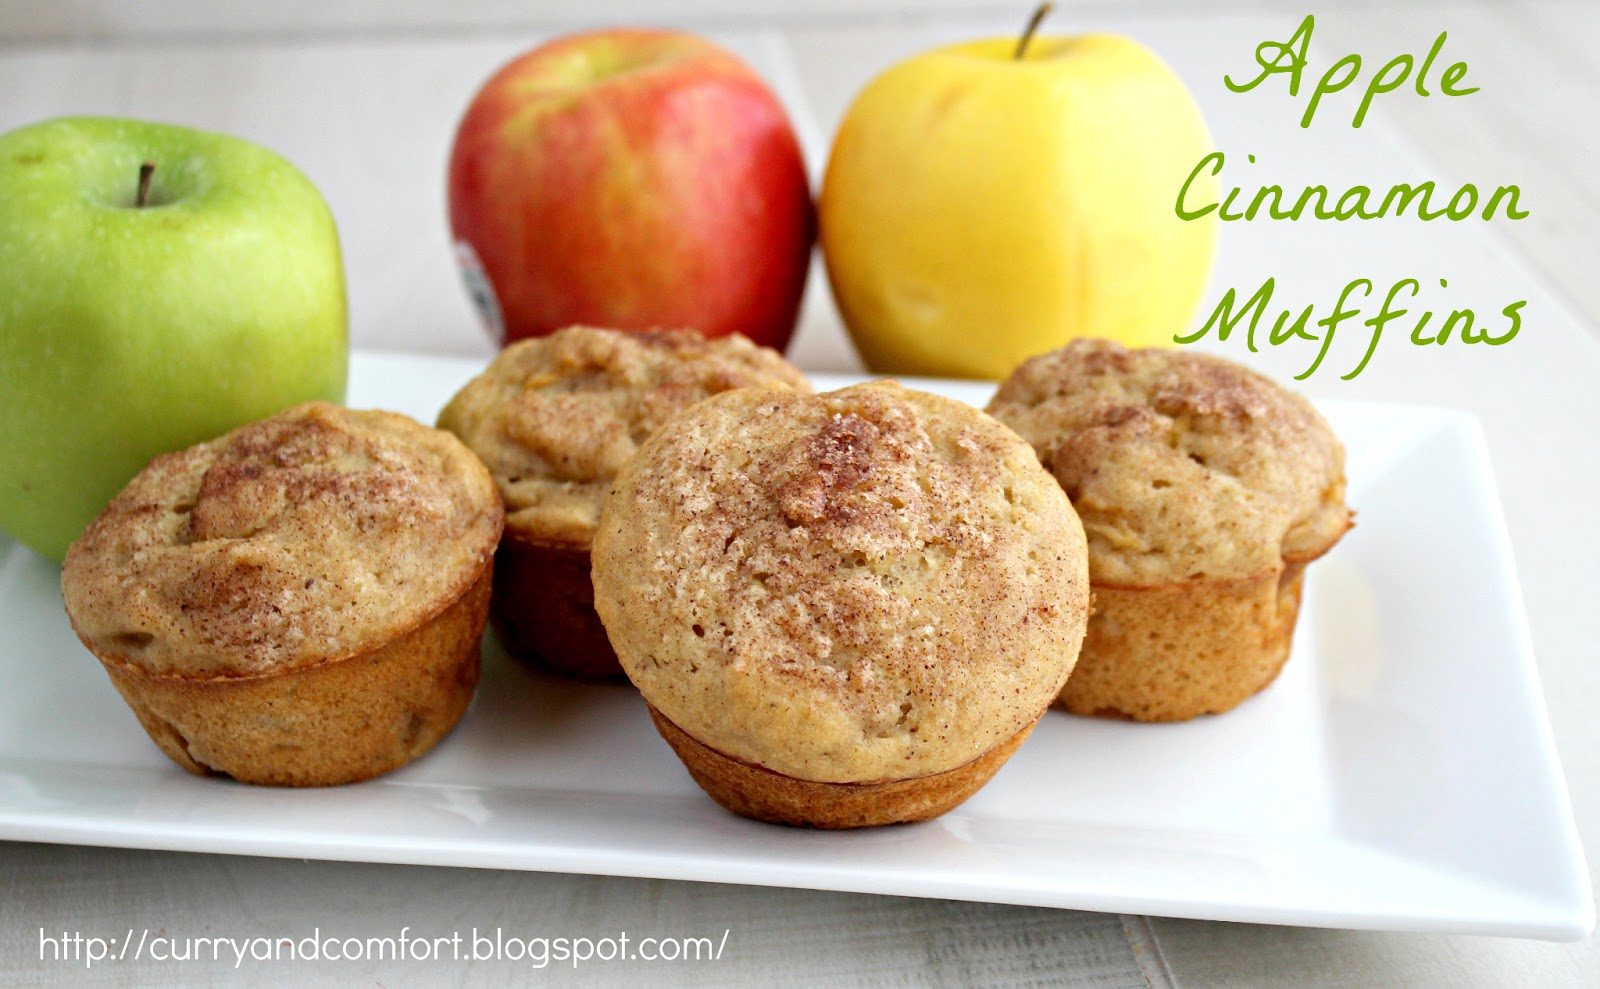 Curry and Comfort: Apple Cinnamon Muffins